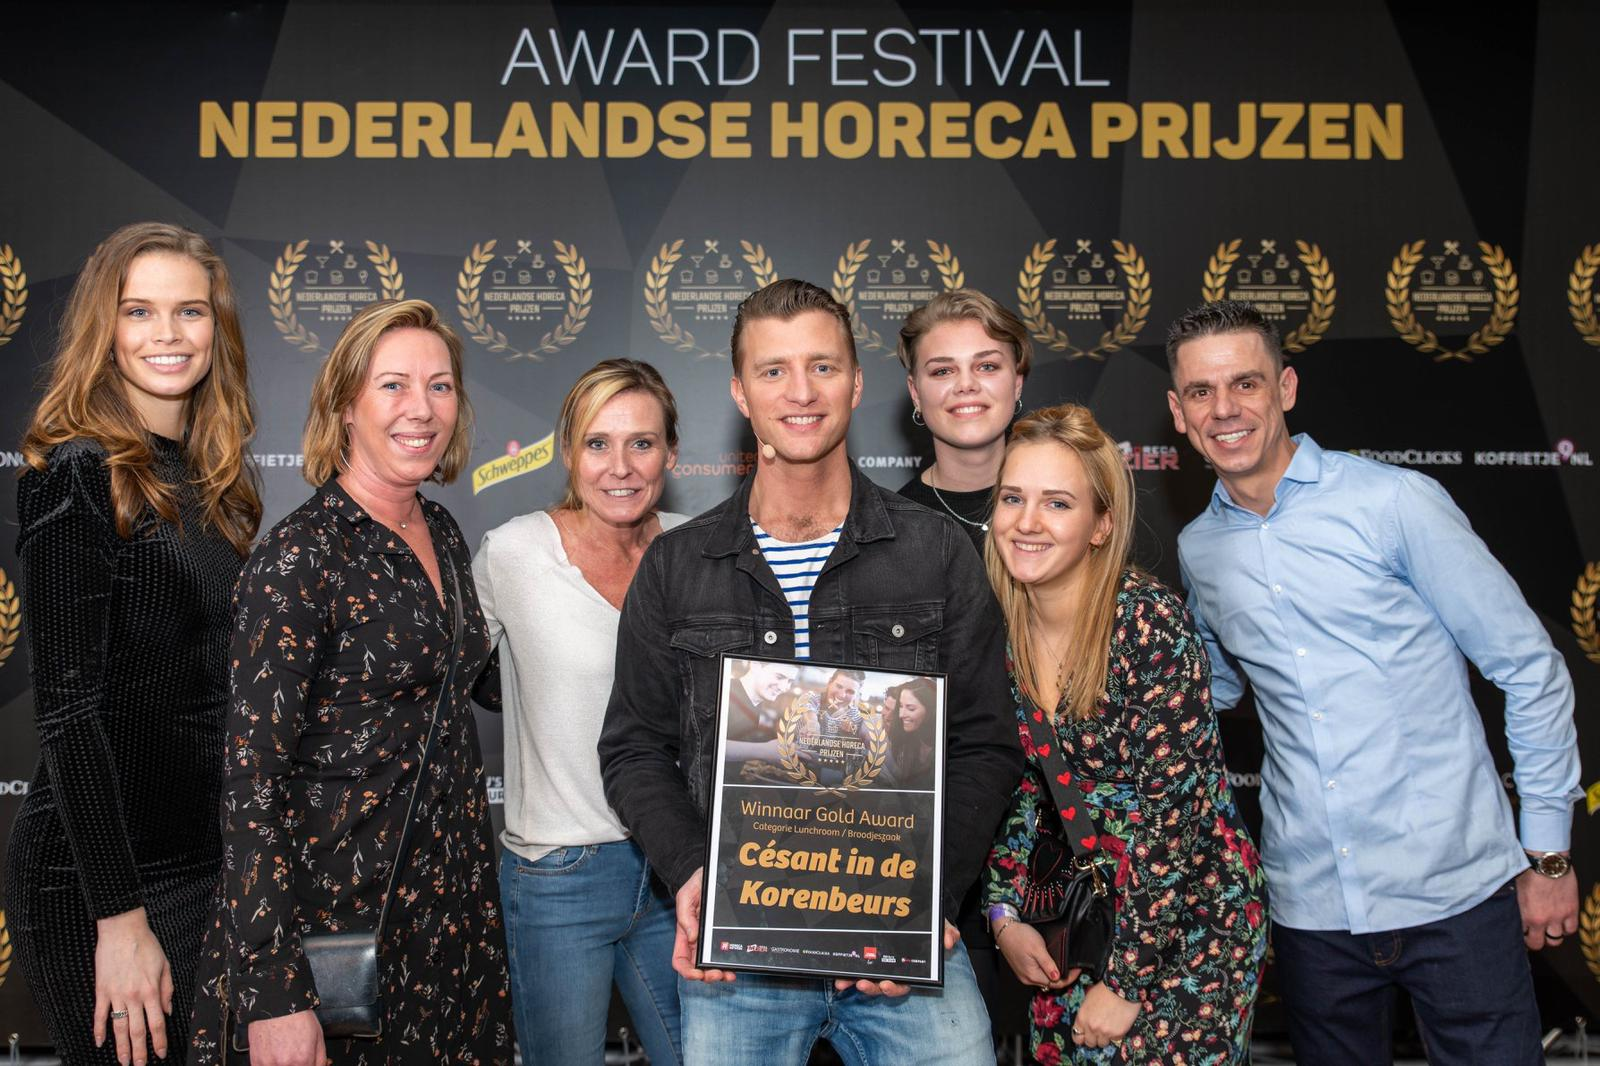 Gold Award Winnaar Césant in de Korenbeurs!